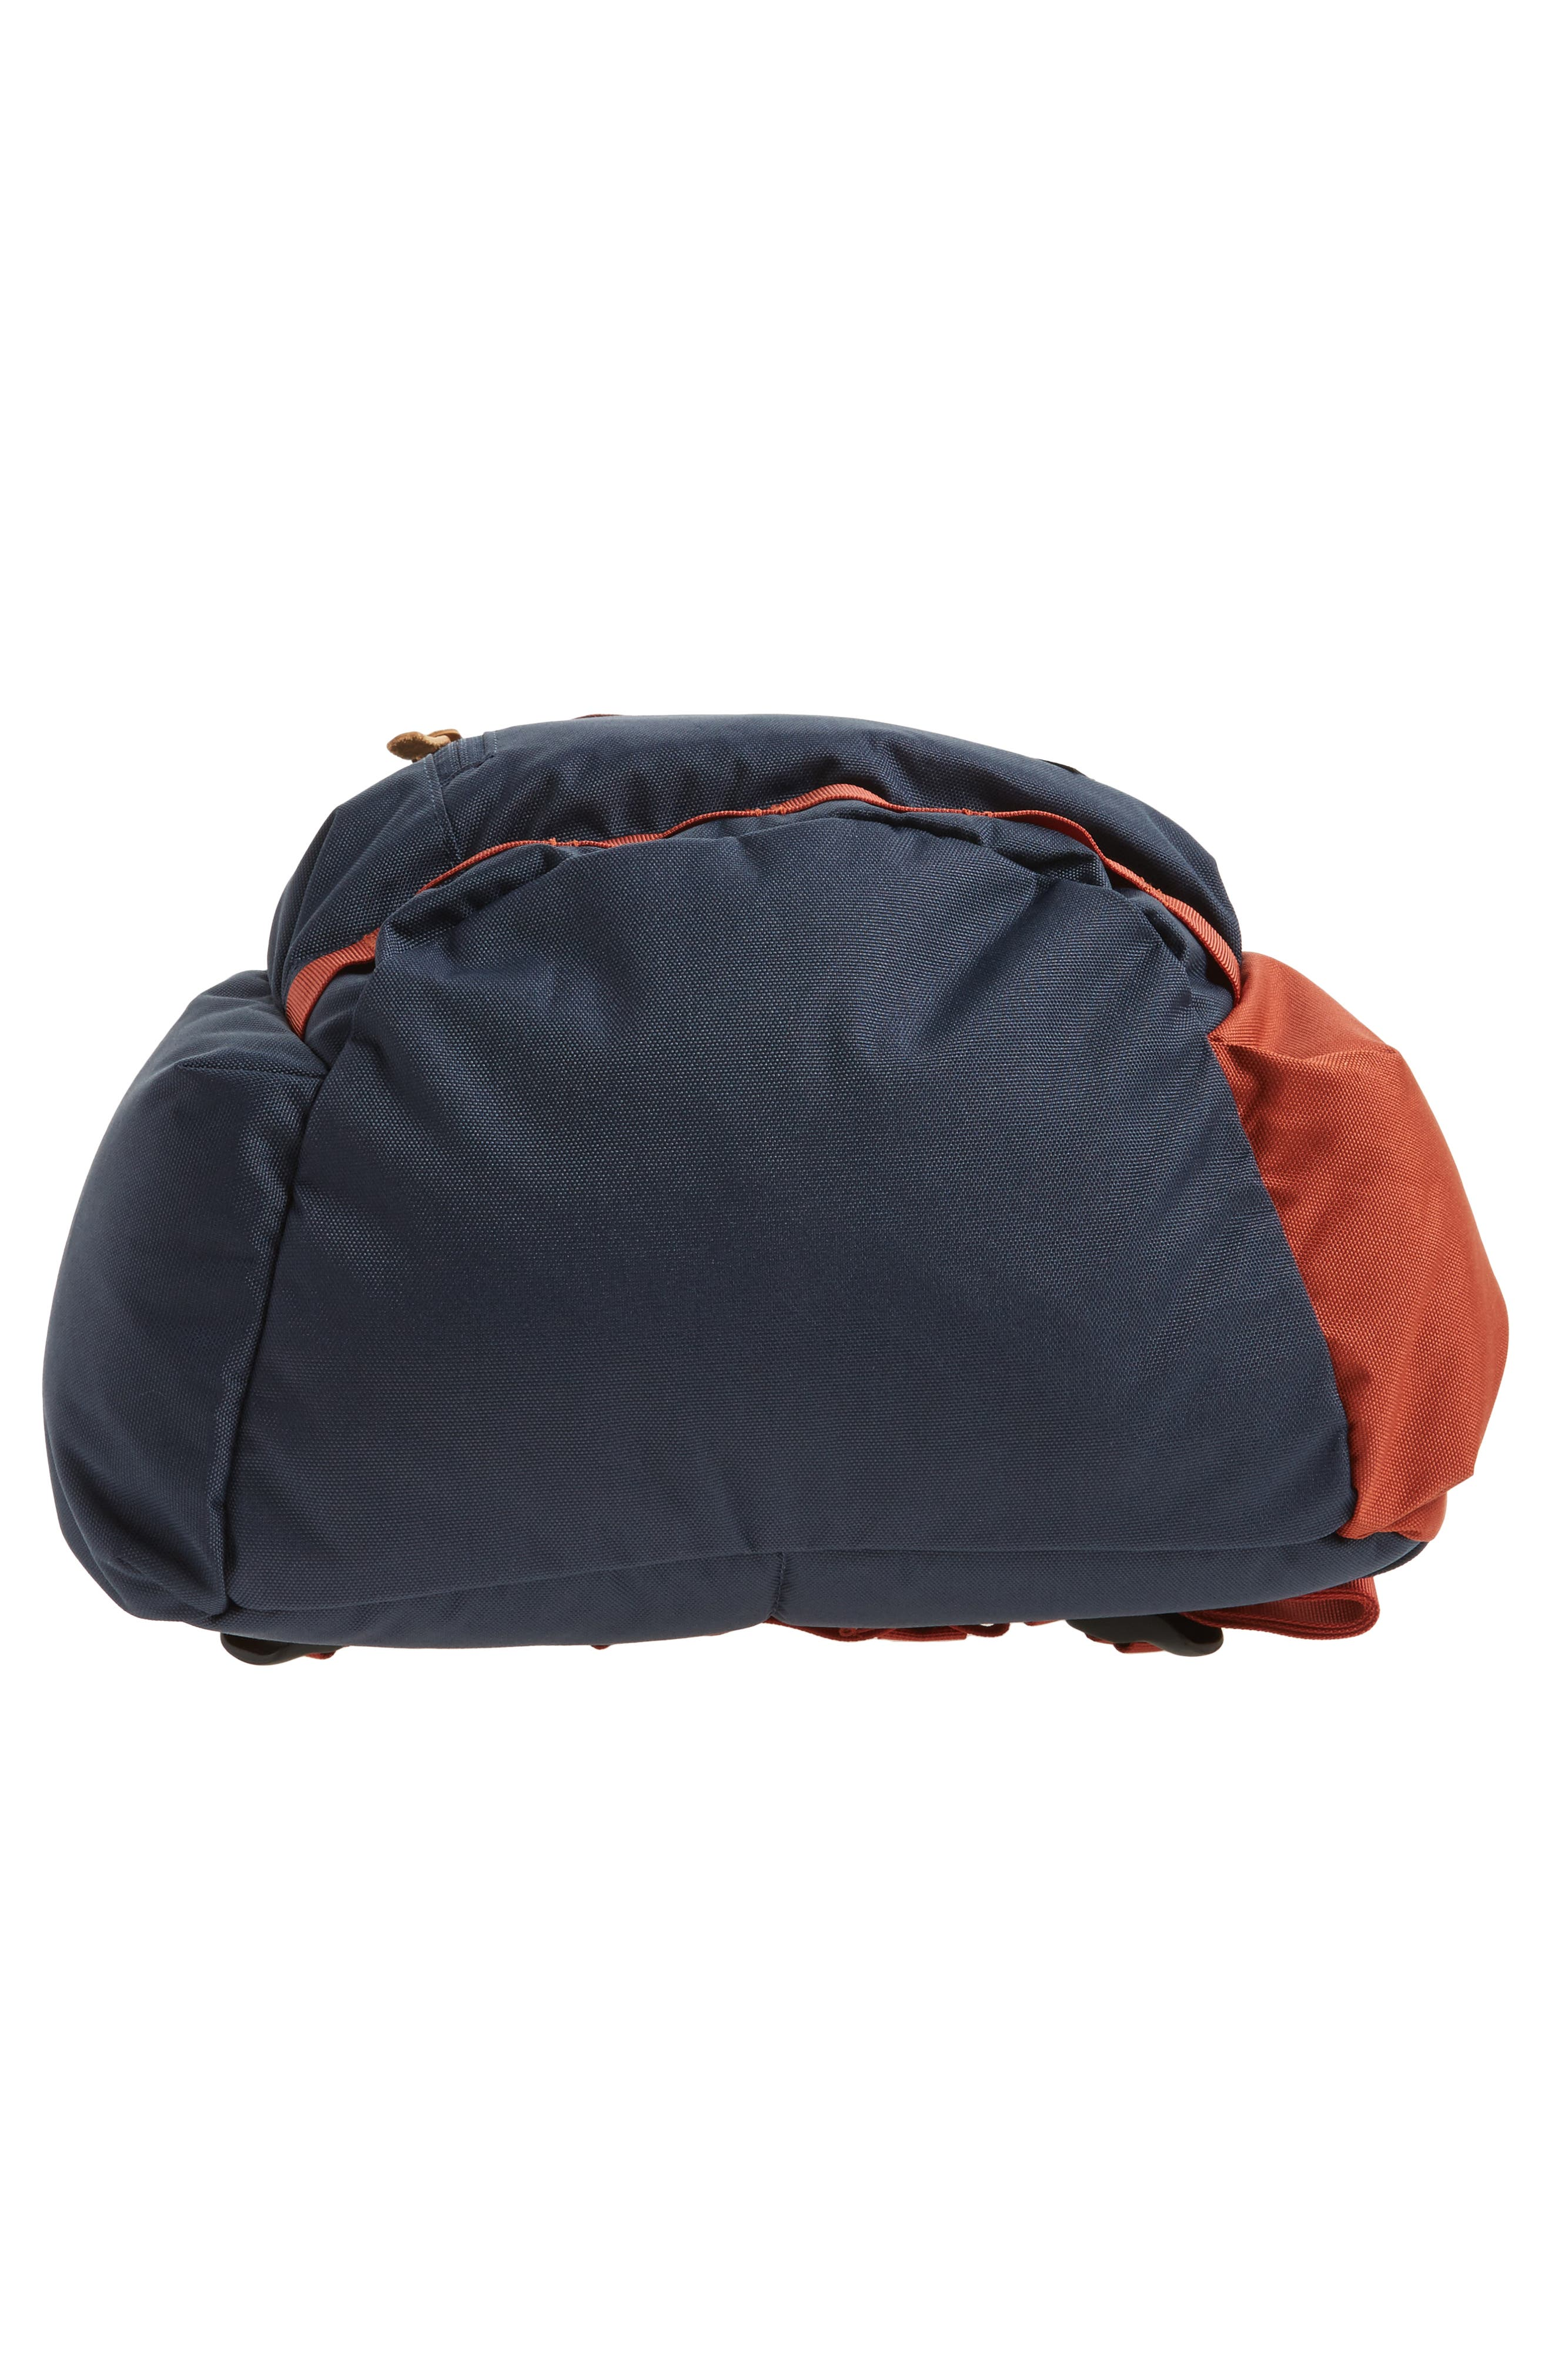 Rift Backpack,                             Alternate thumbnail 5, color,                             Navy/ Rust